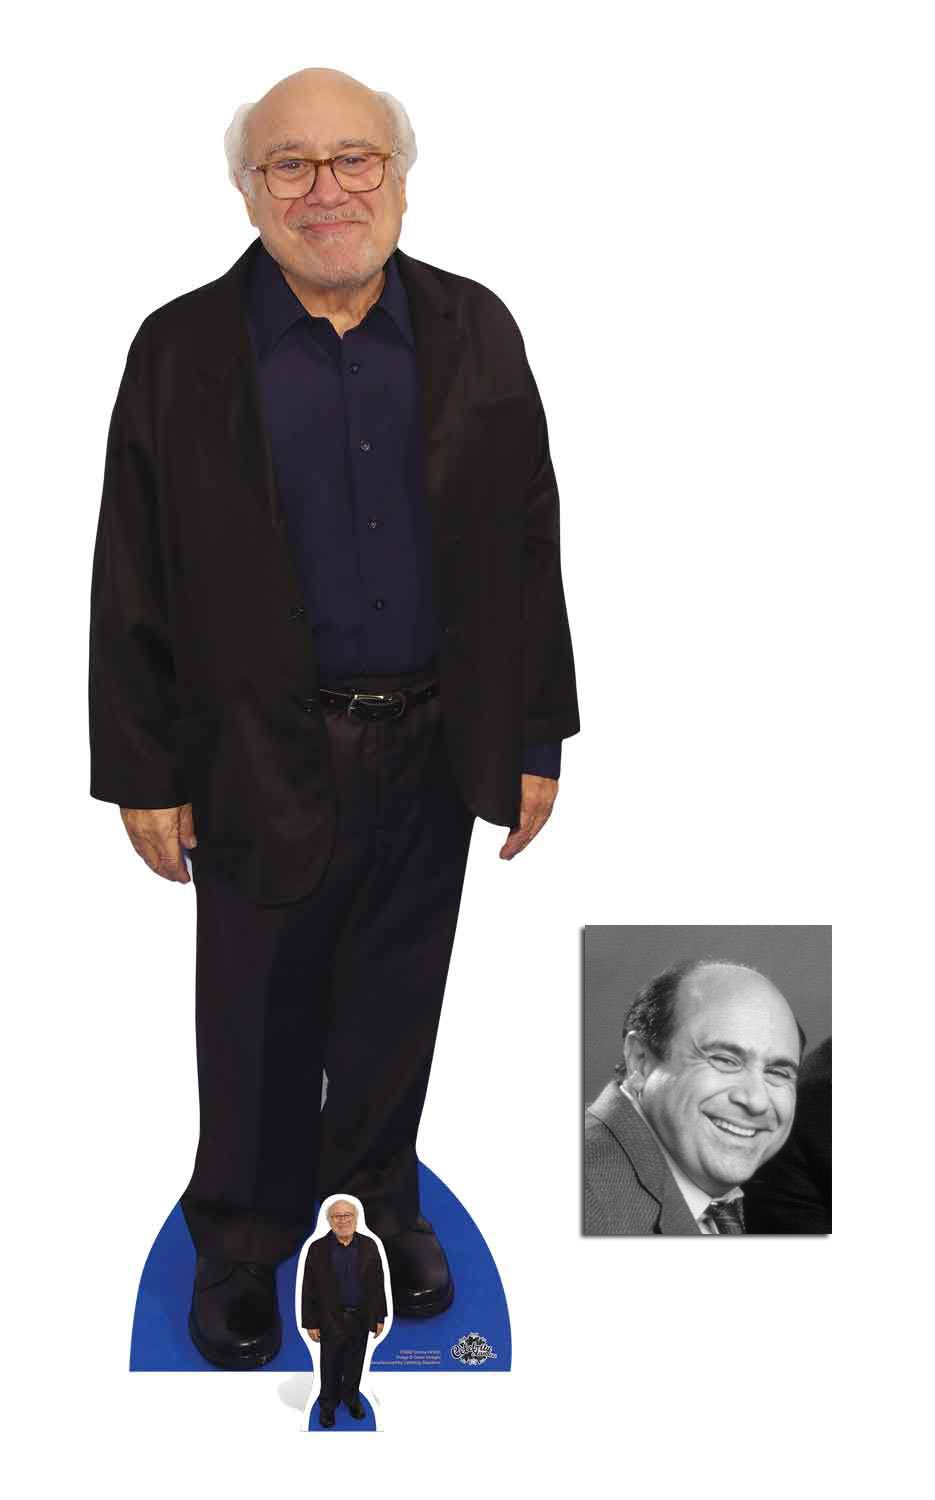 Fan Pack - Danny DeVito Lifesize Cardboard Cutout / Standup / Standee - Includes 8x10 Star Photo